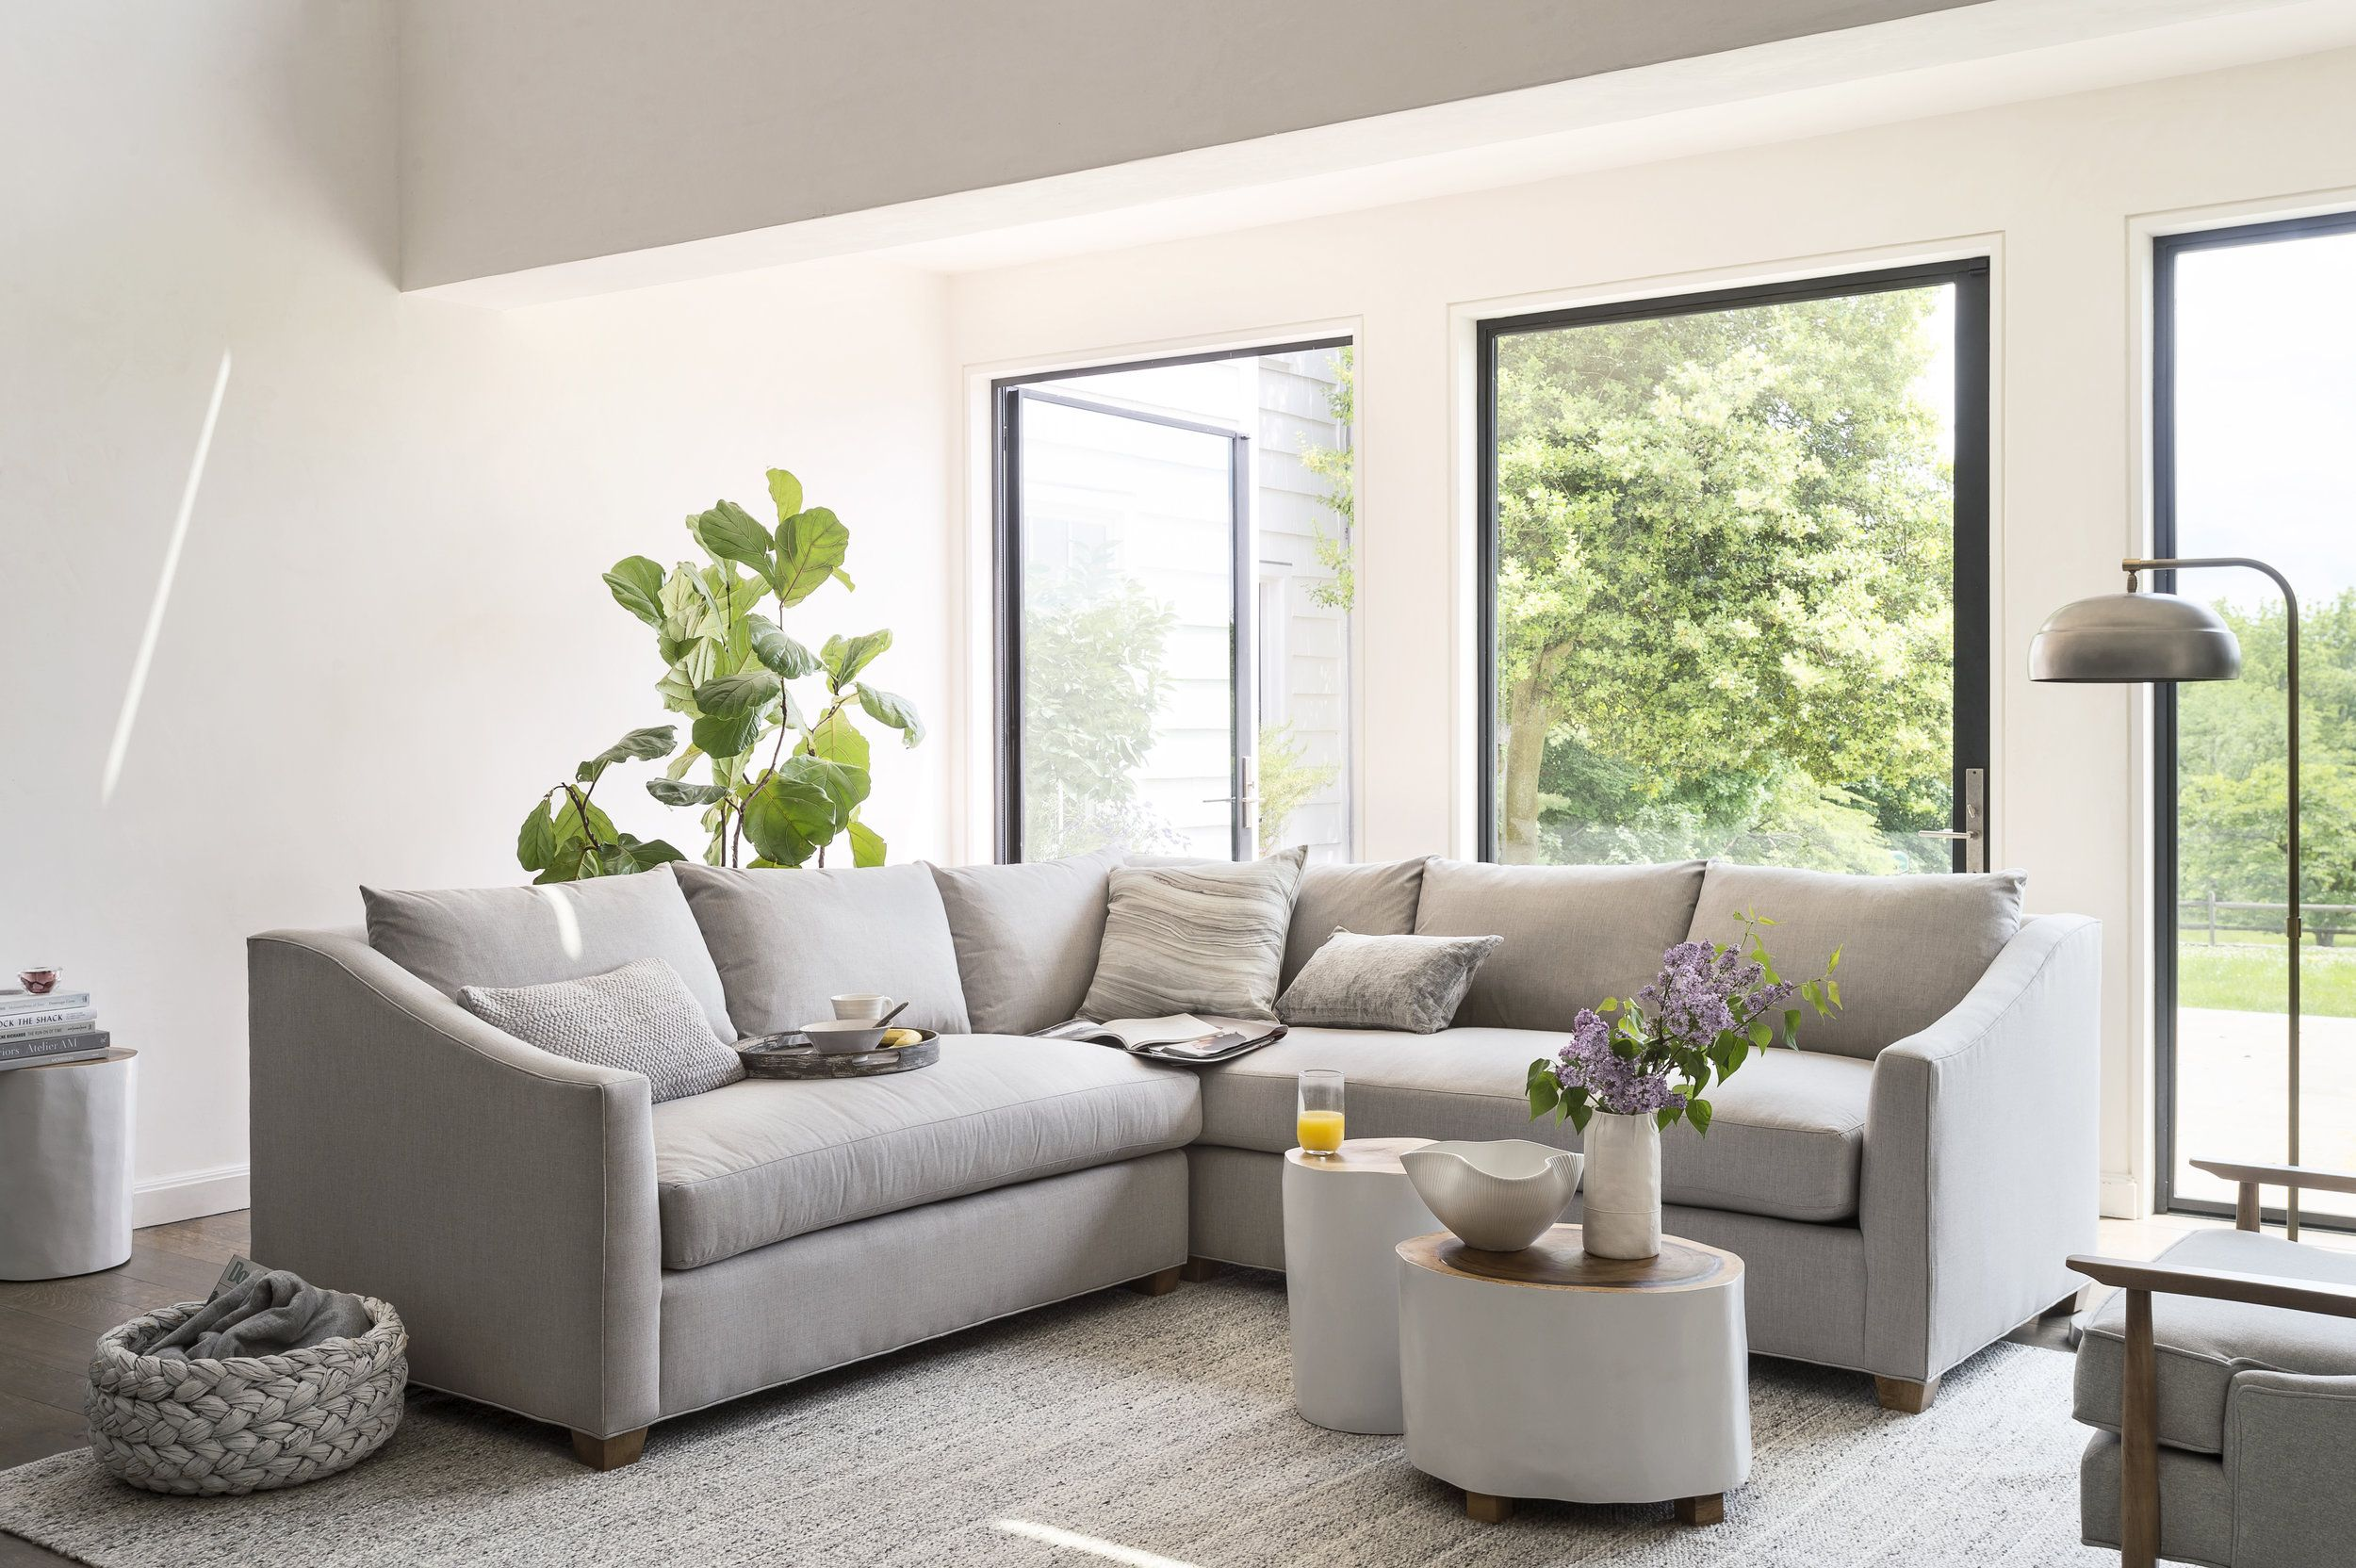 Product Display Page Videos For Maiden Home By Rally Co Marcella Iulo Home Casual Family Rooms Grey Sectional